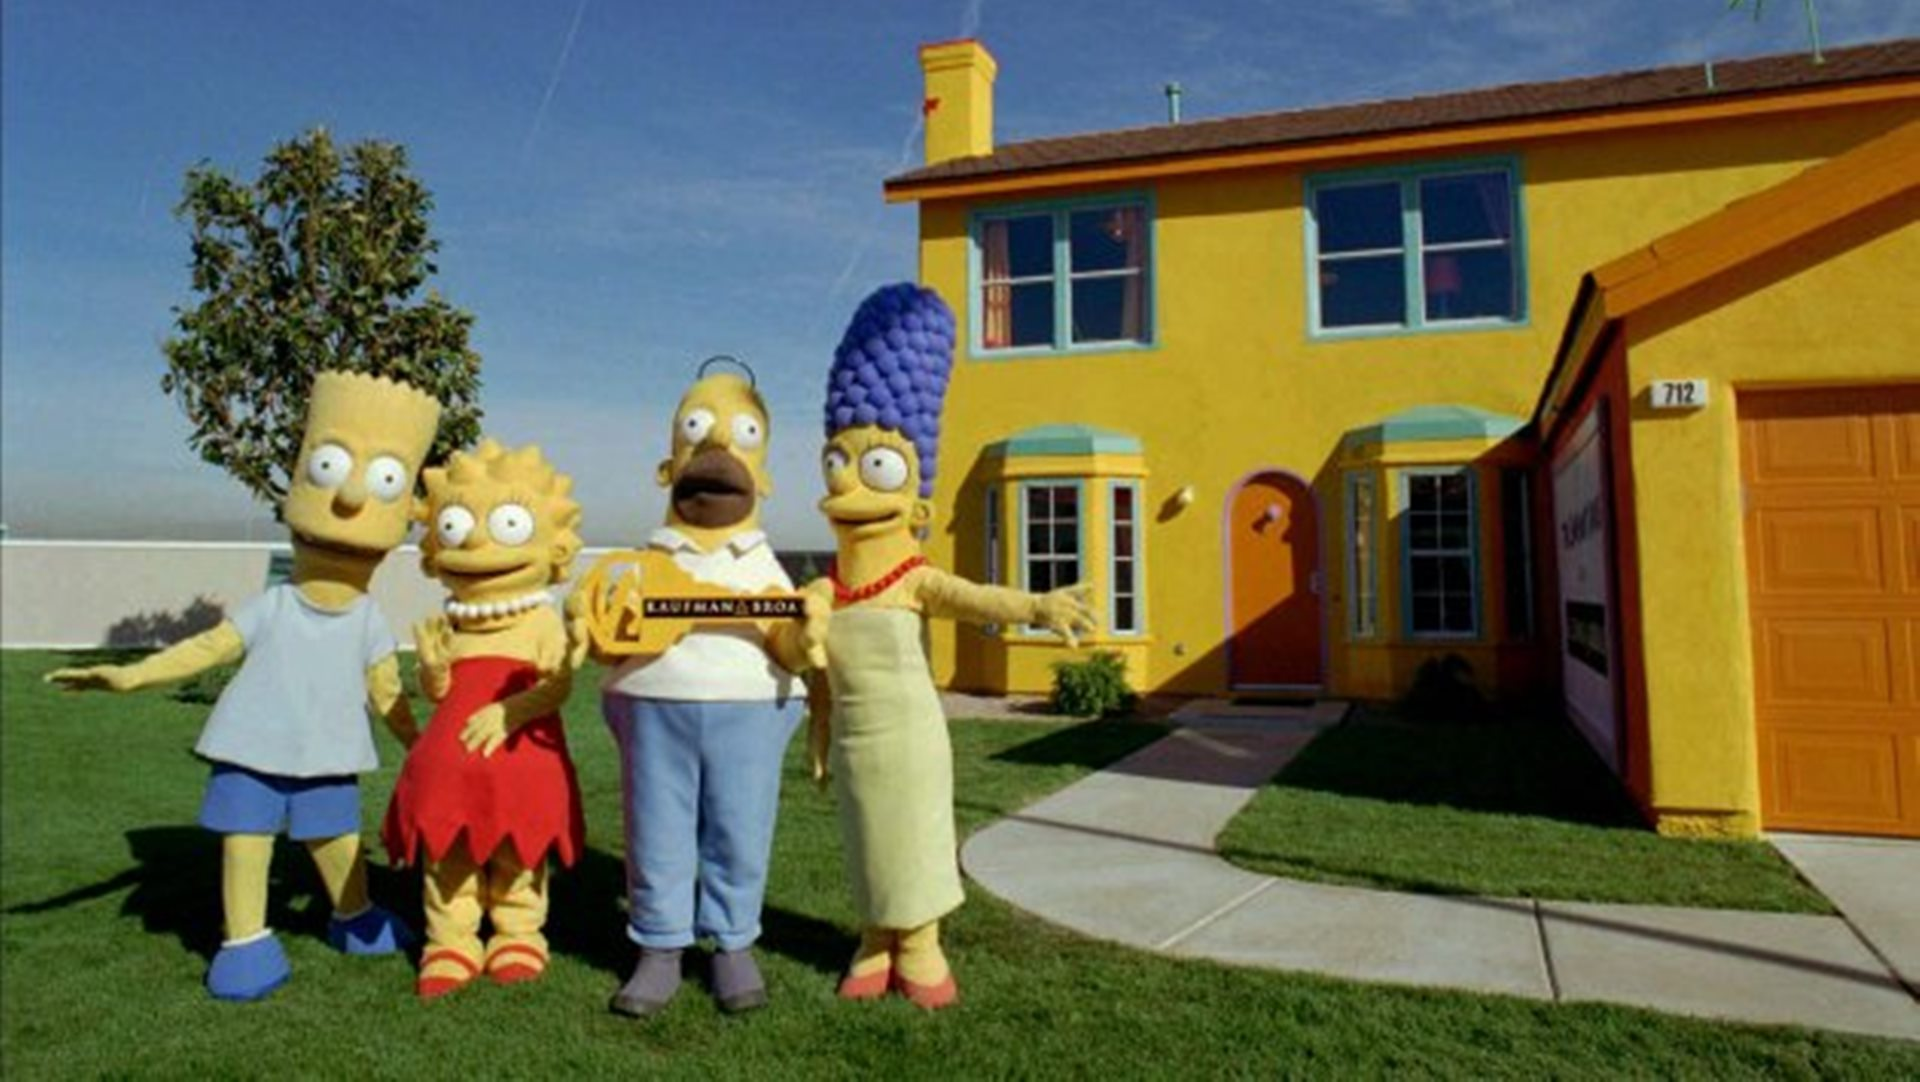 Simpsons Home – houses inspired by movies